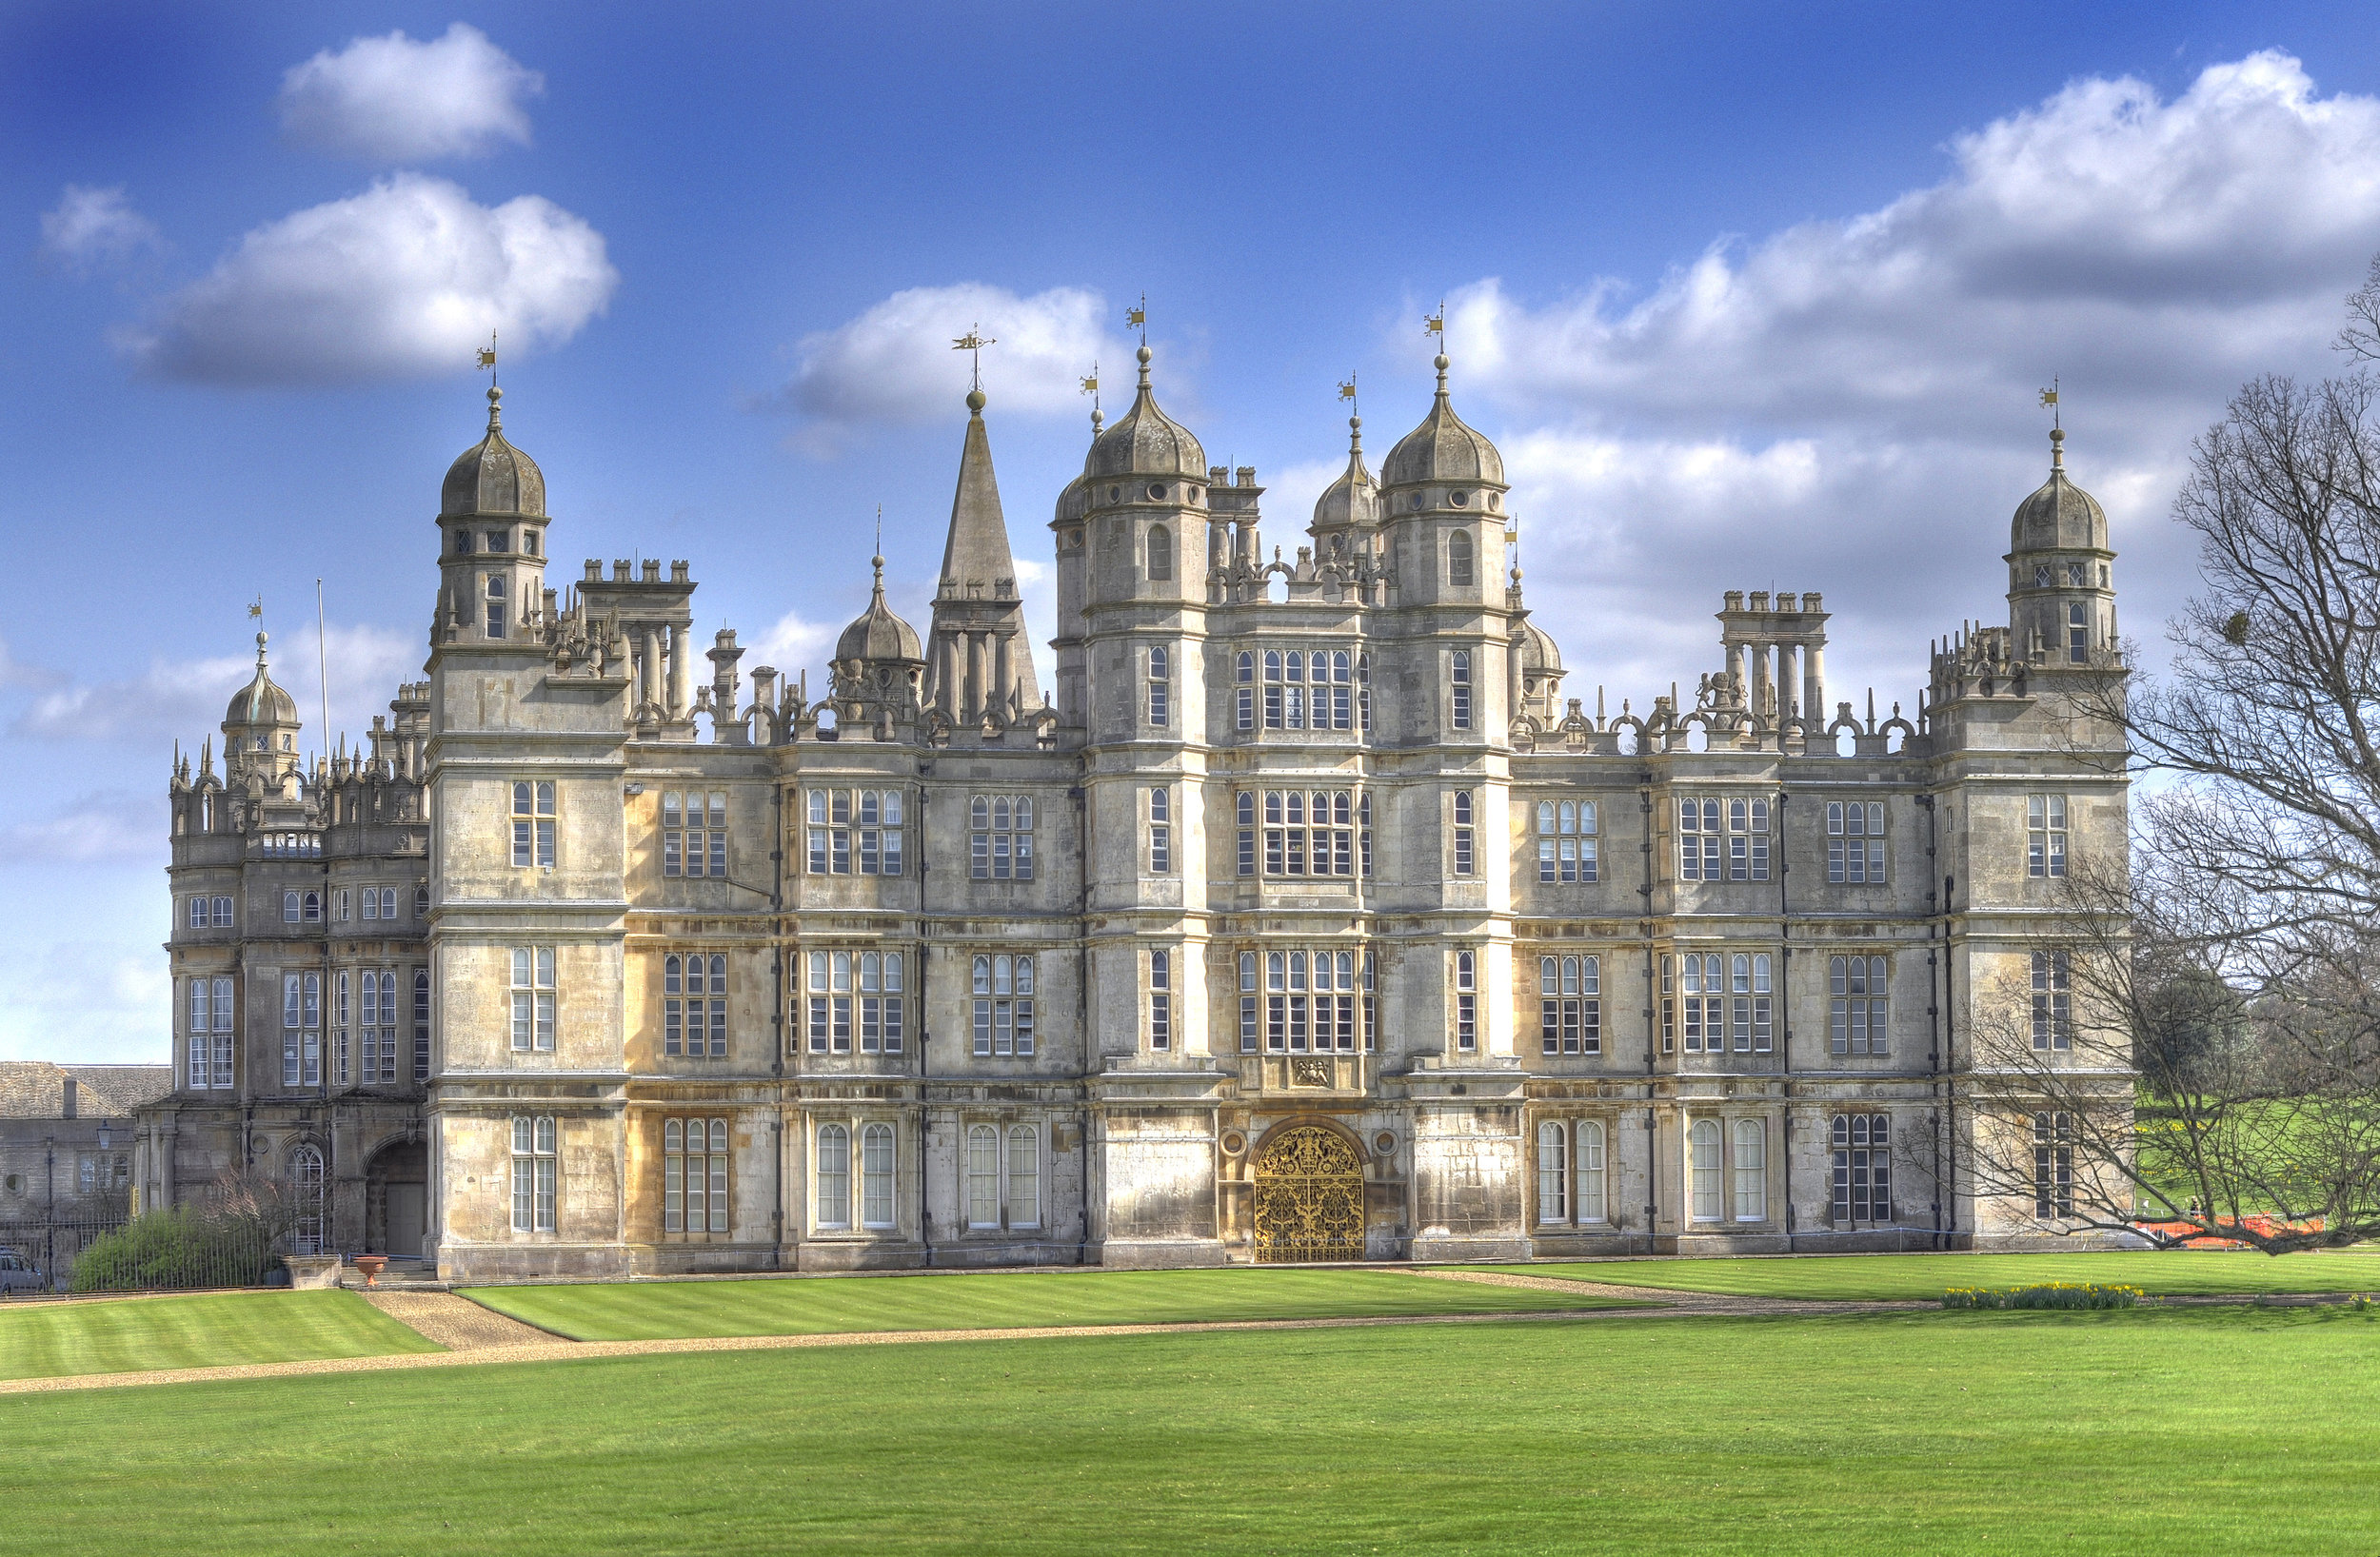 Burghley House By Anthony Masi licensed for reuse under CC BY-SA 2.0